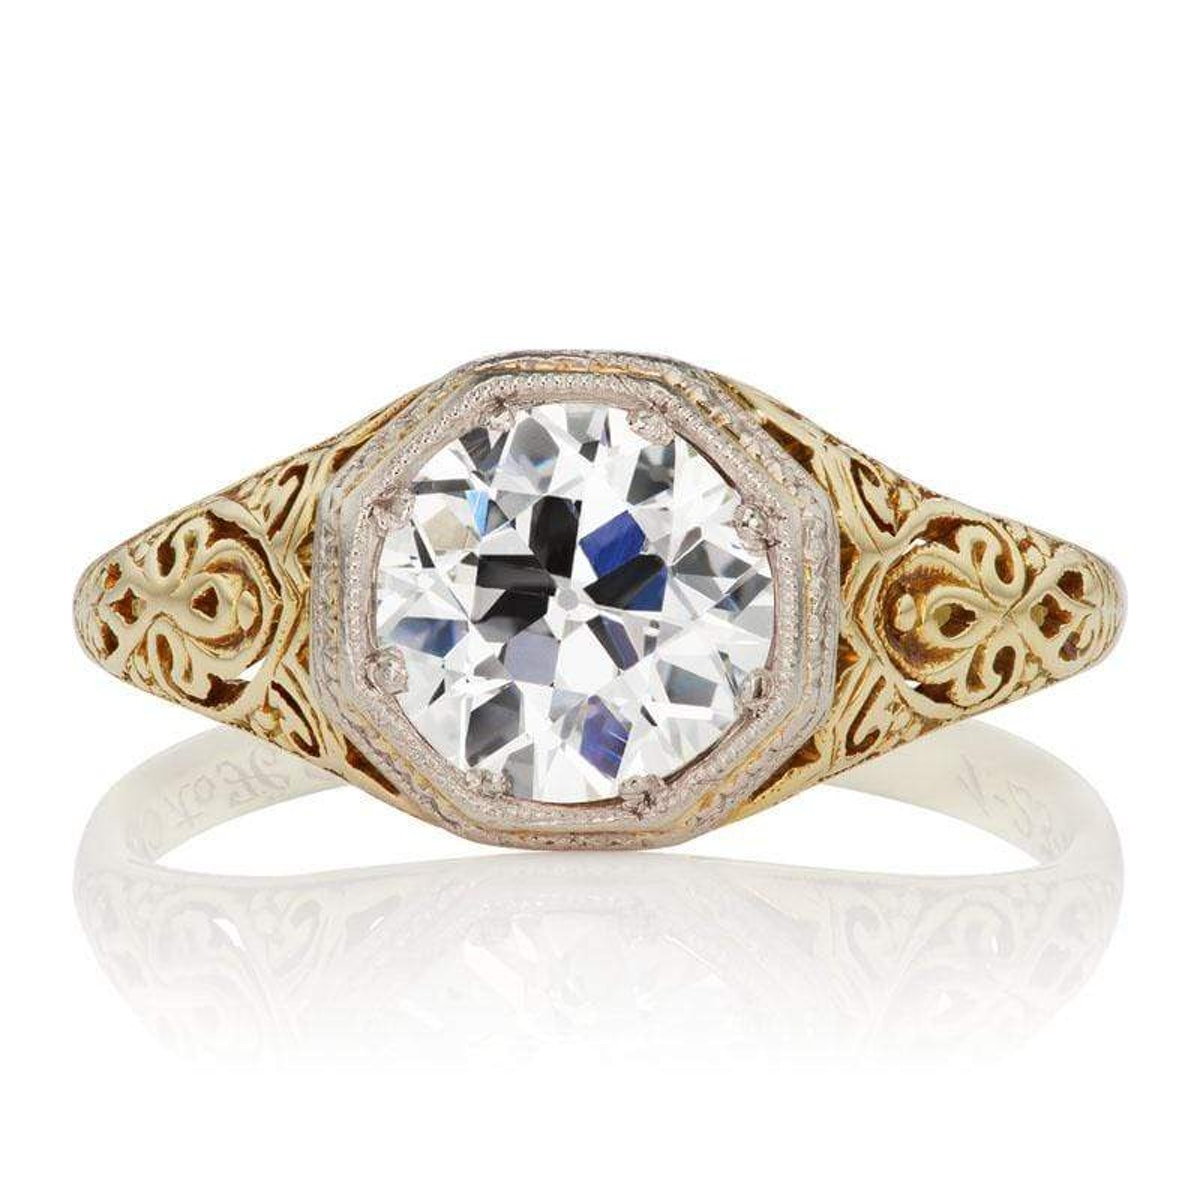 Parker old European cut diamond engagement ring from Victor Barboné.